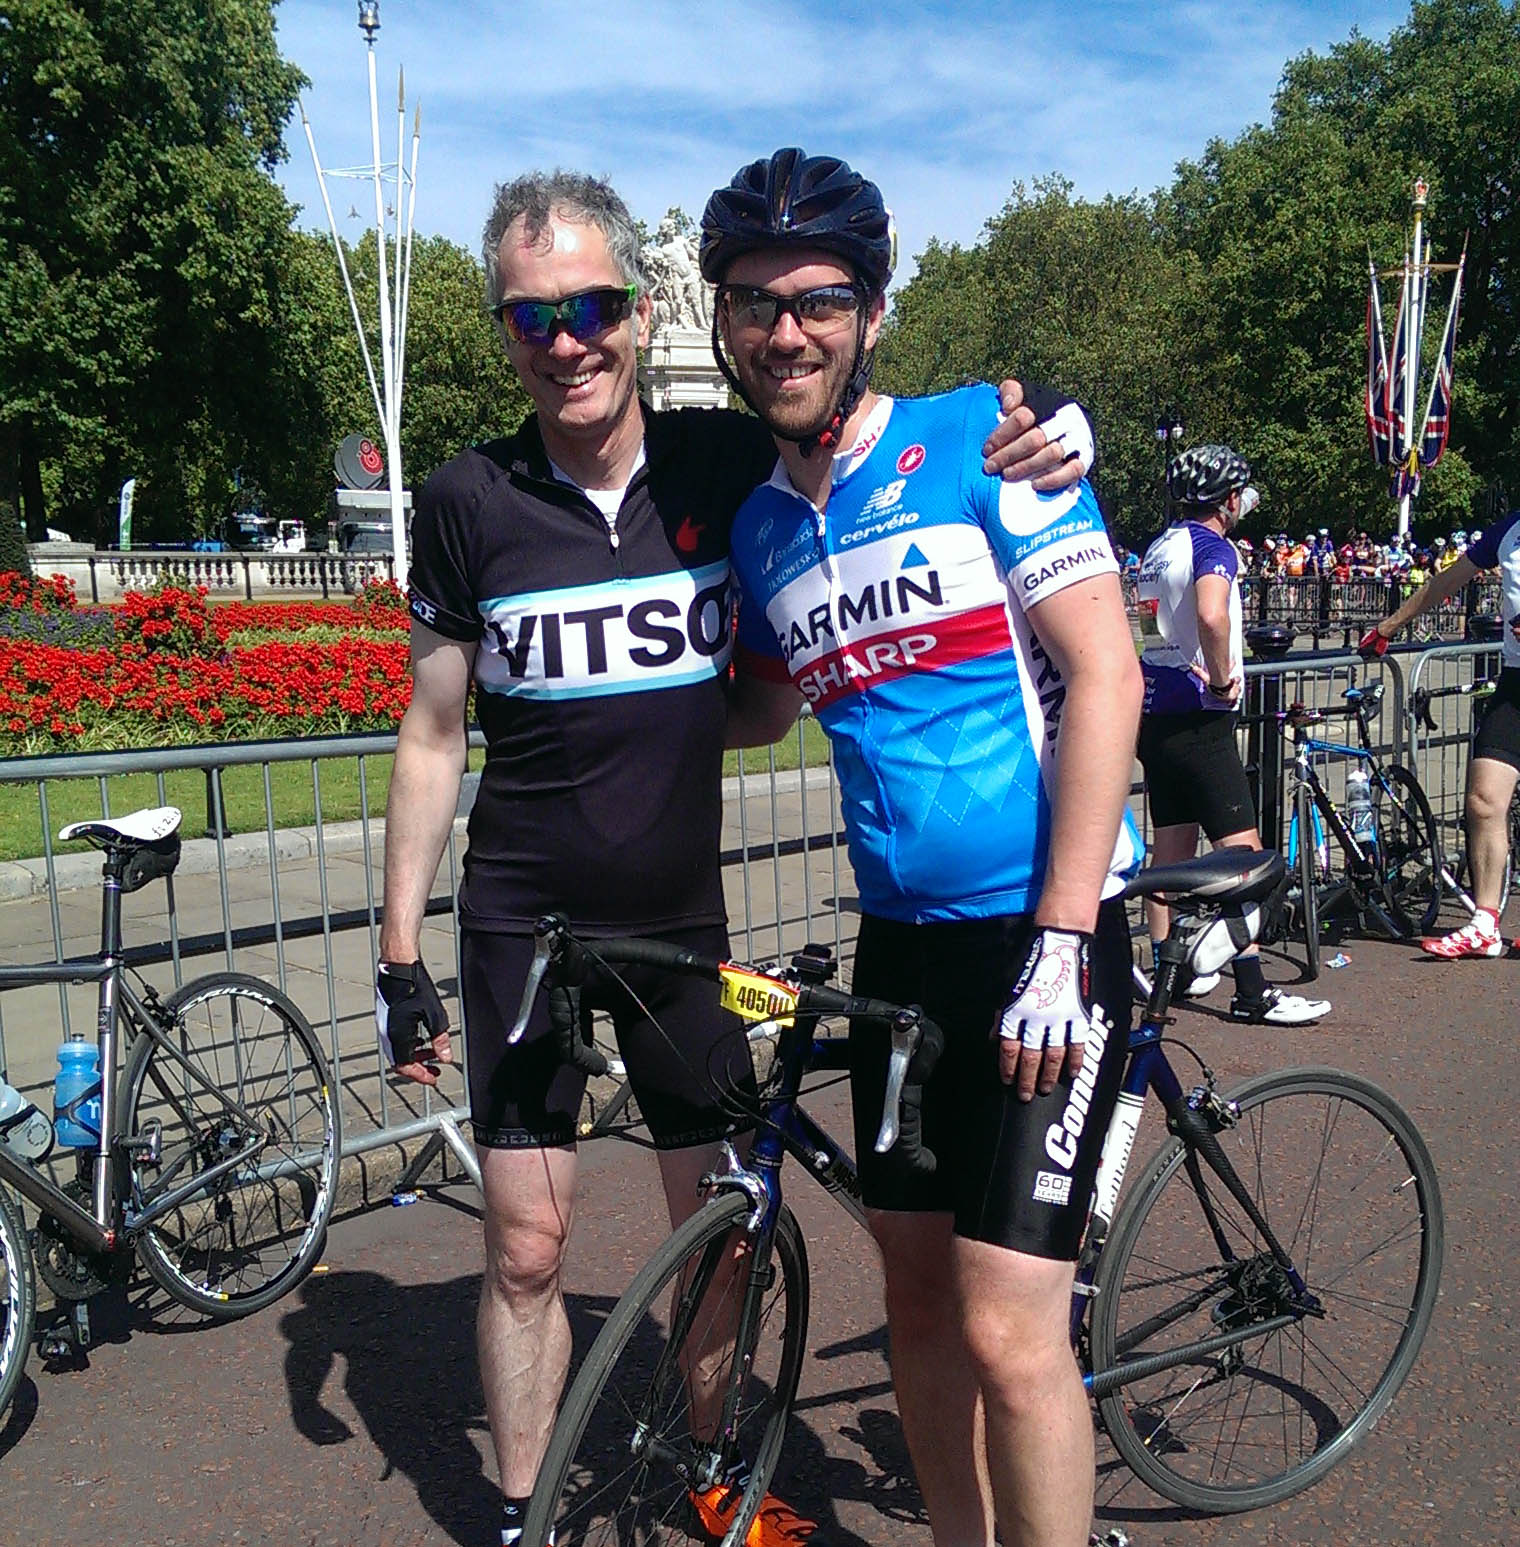 Congratulations to our two Ride London 100 fundraisers